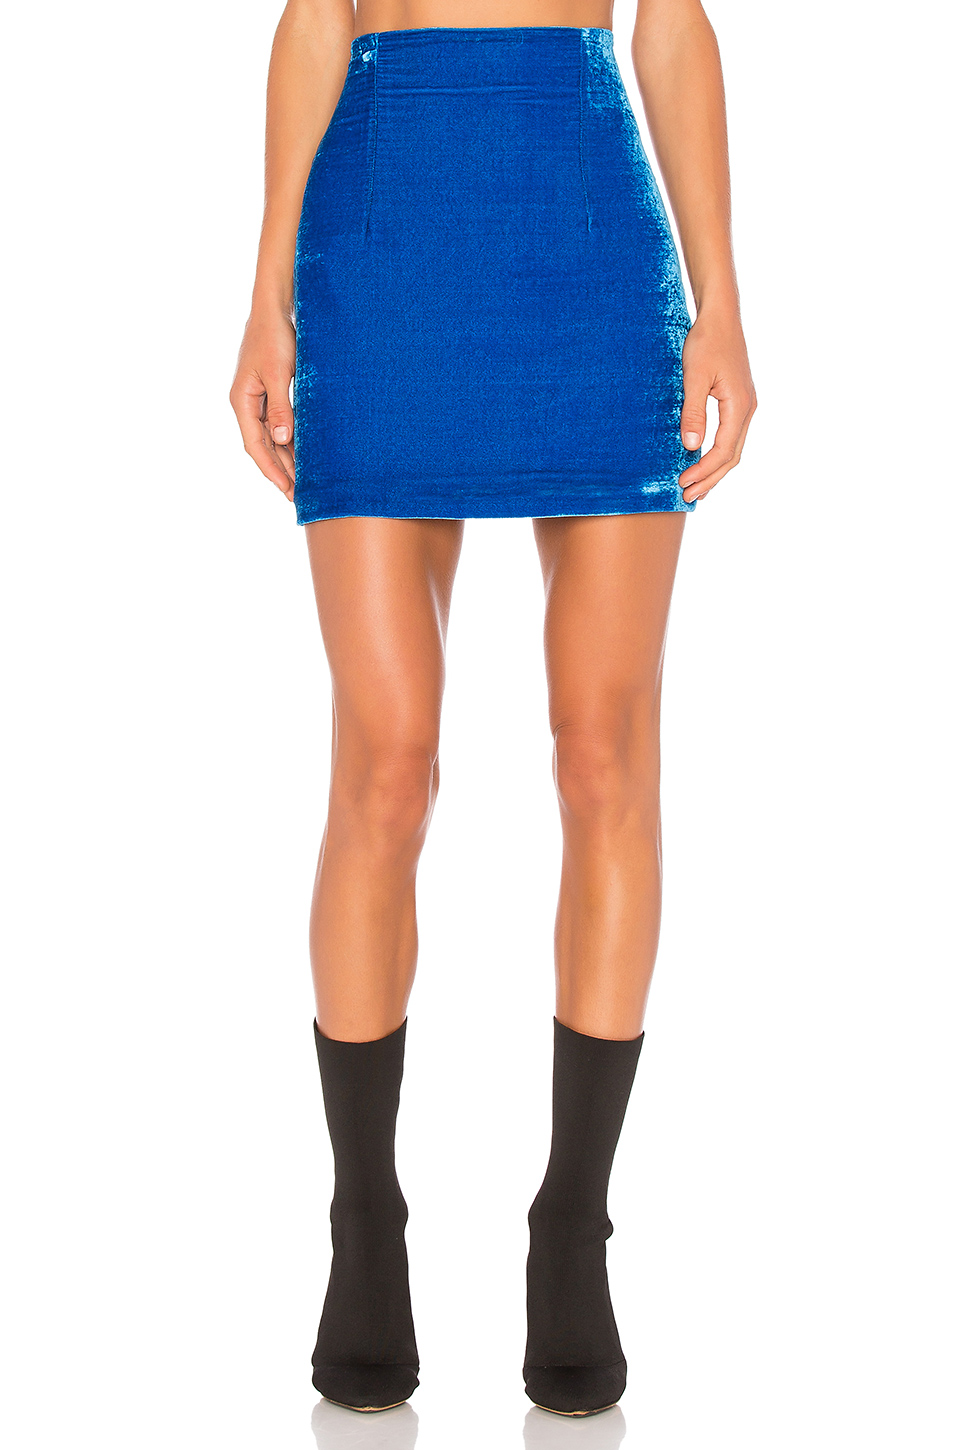 OFF-WHITE Velvet Mini Skirt in Blue